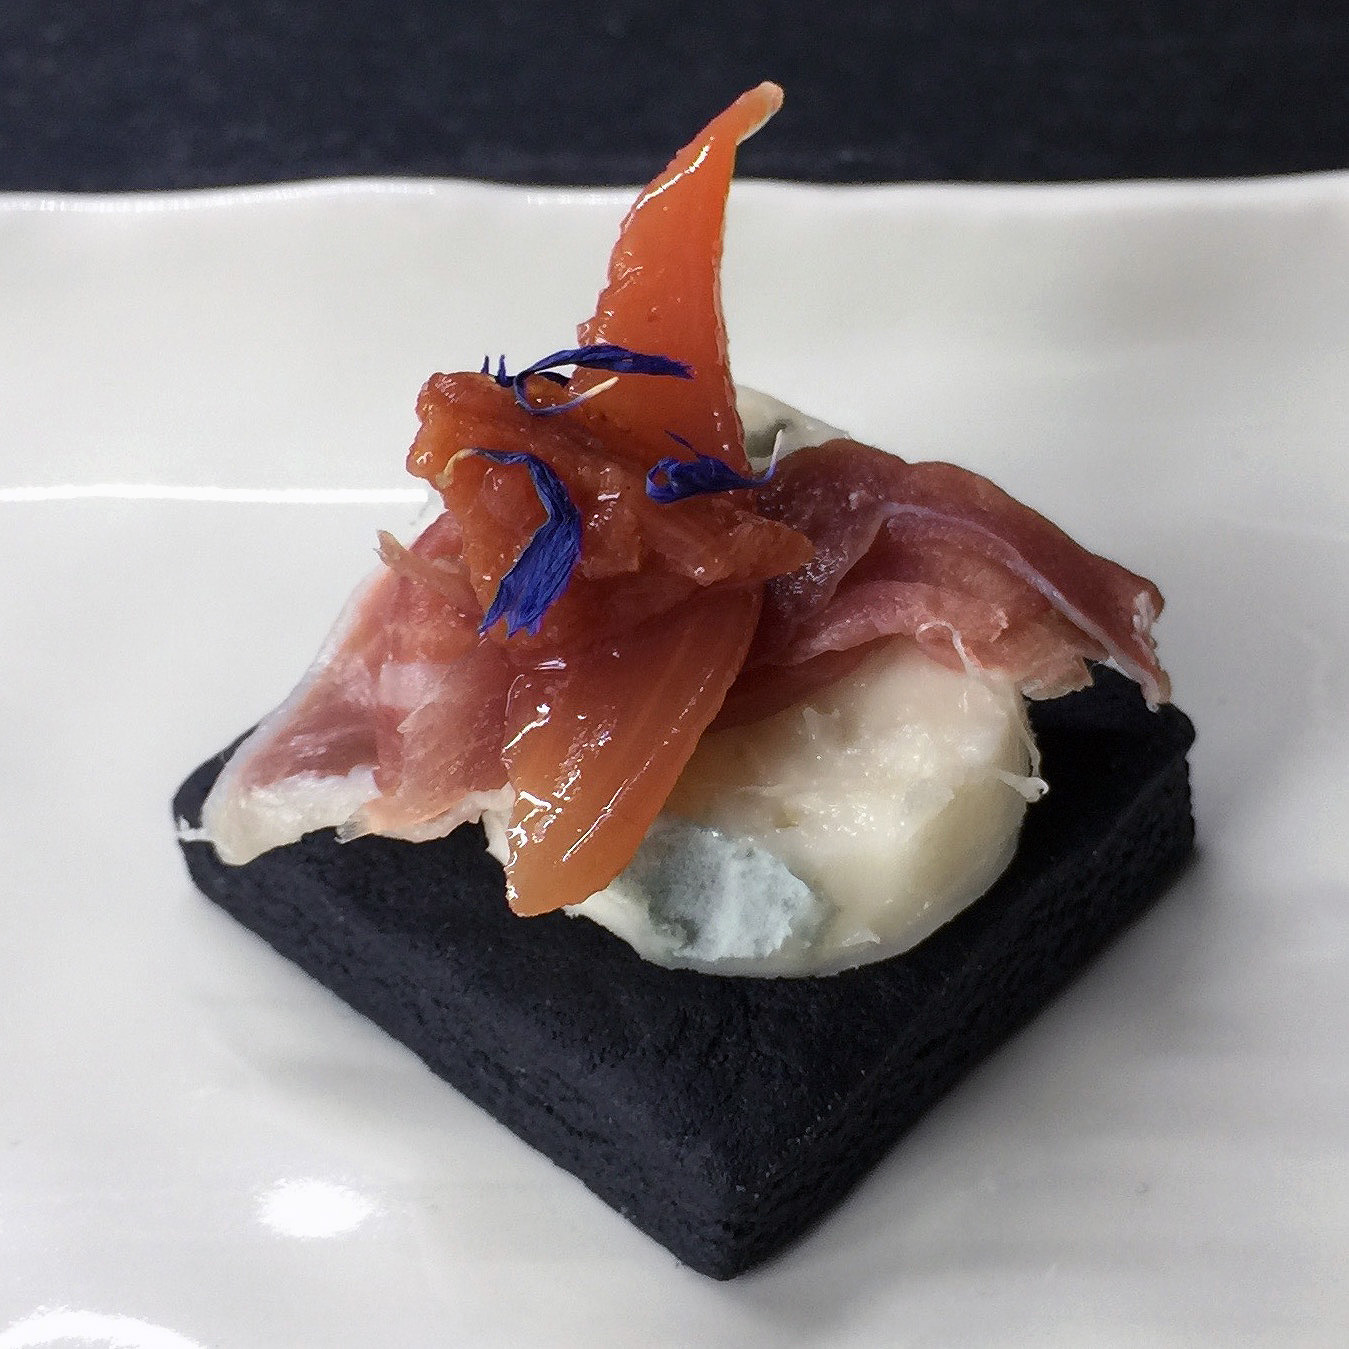 Charcoal biscuit with gorgonzola, prosciutto, quince chutney and dried cornflower garnish.